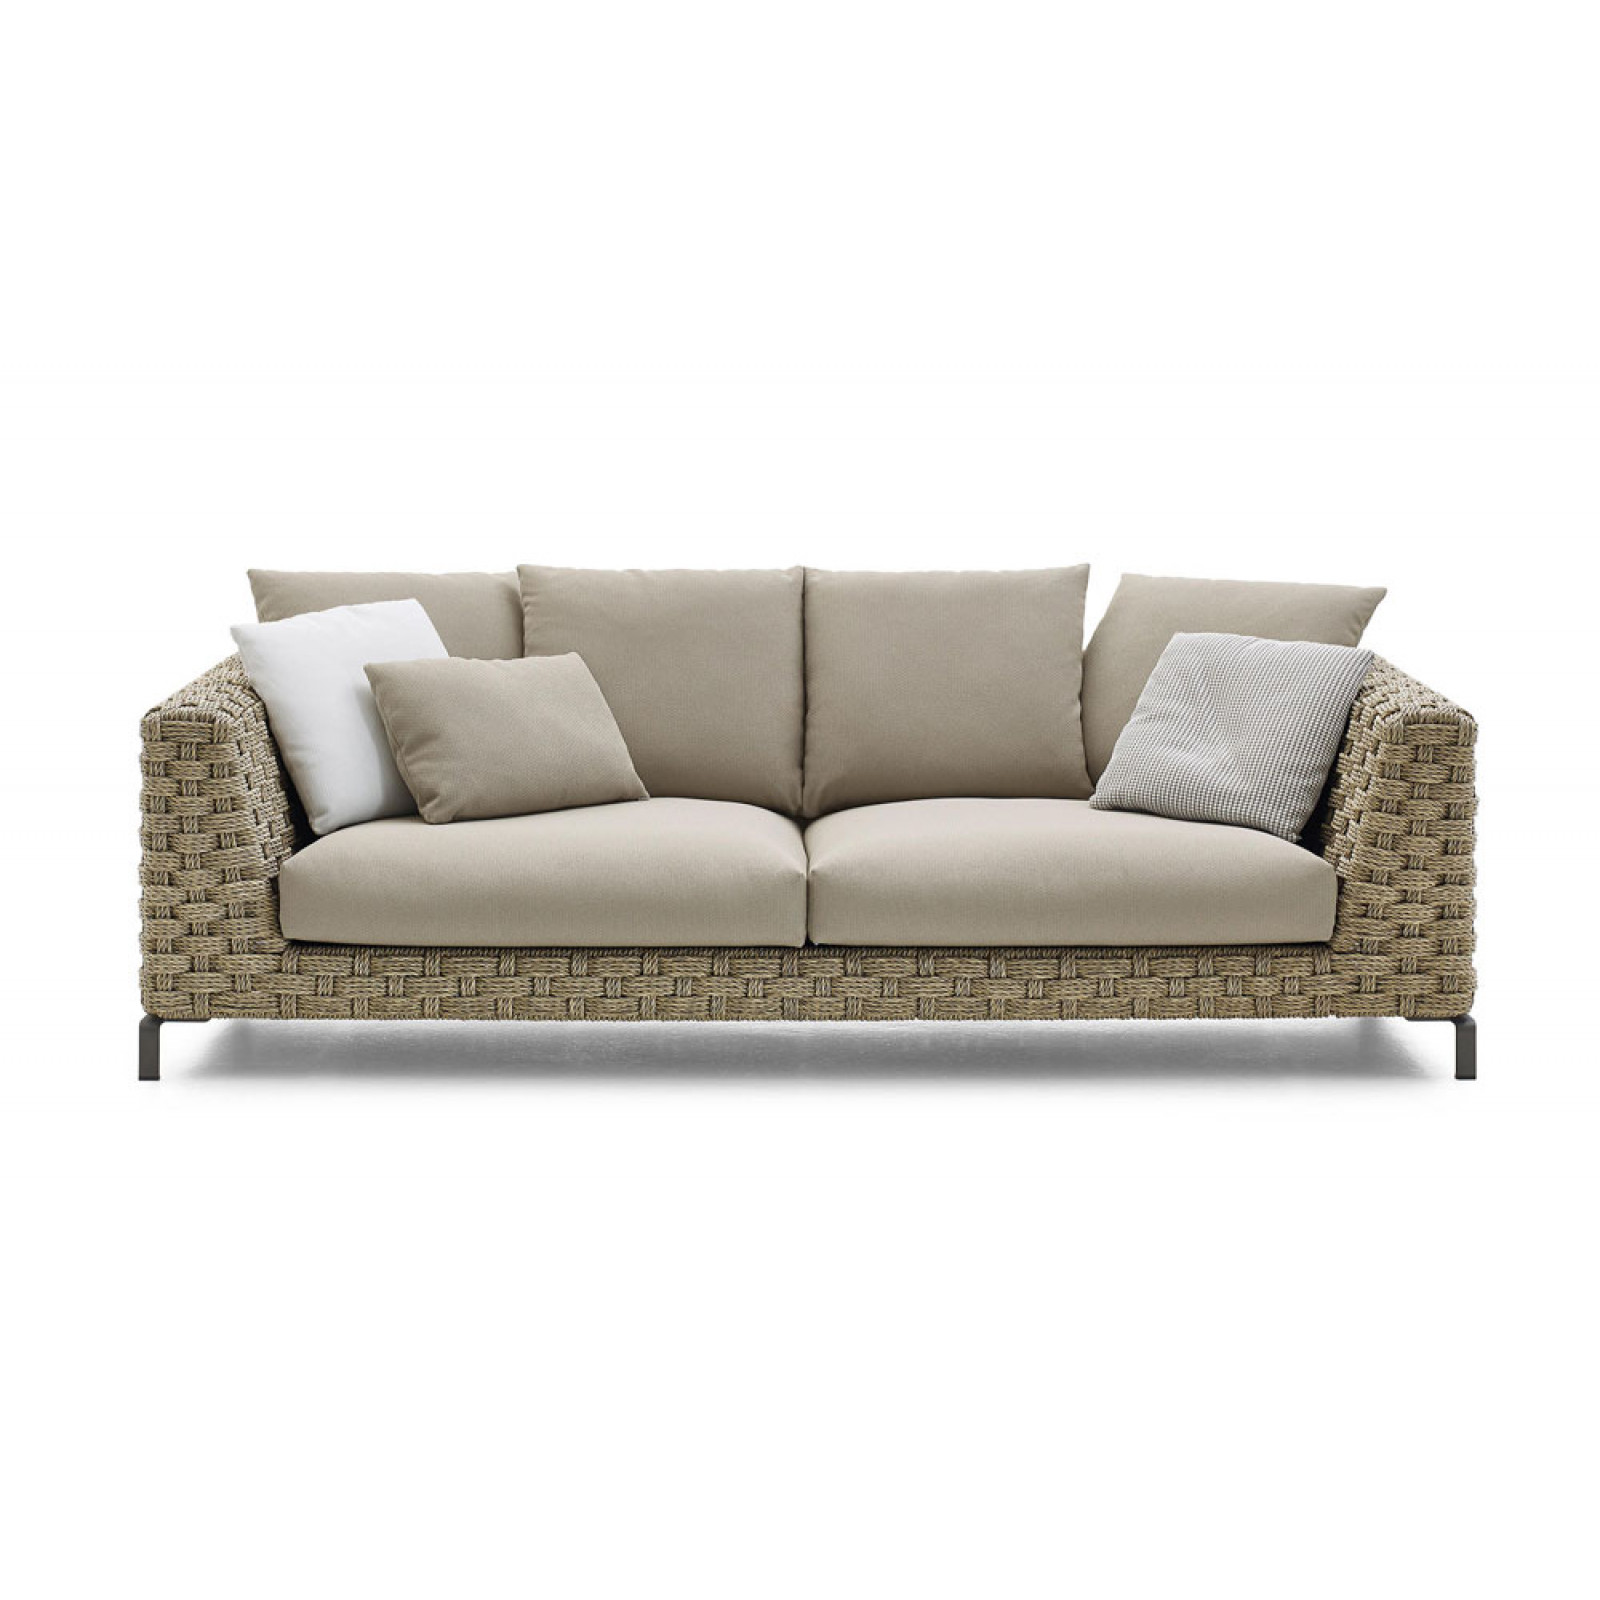 B&B Italia Ray Outdoor Loungesofa 236 cm Natural